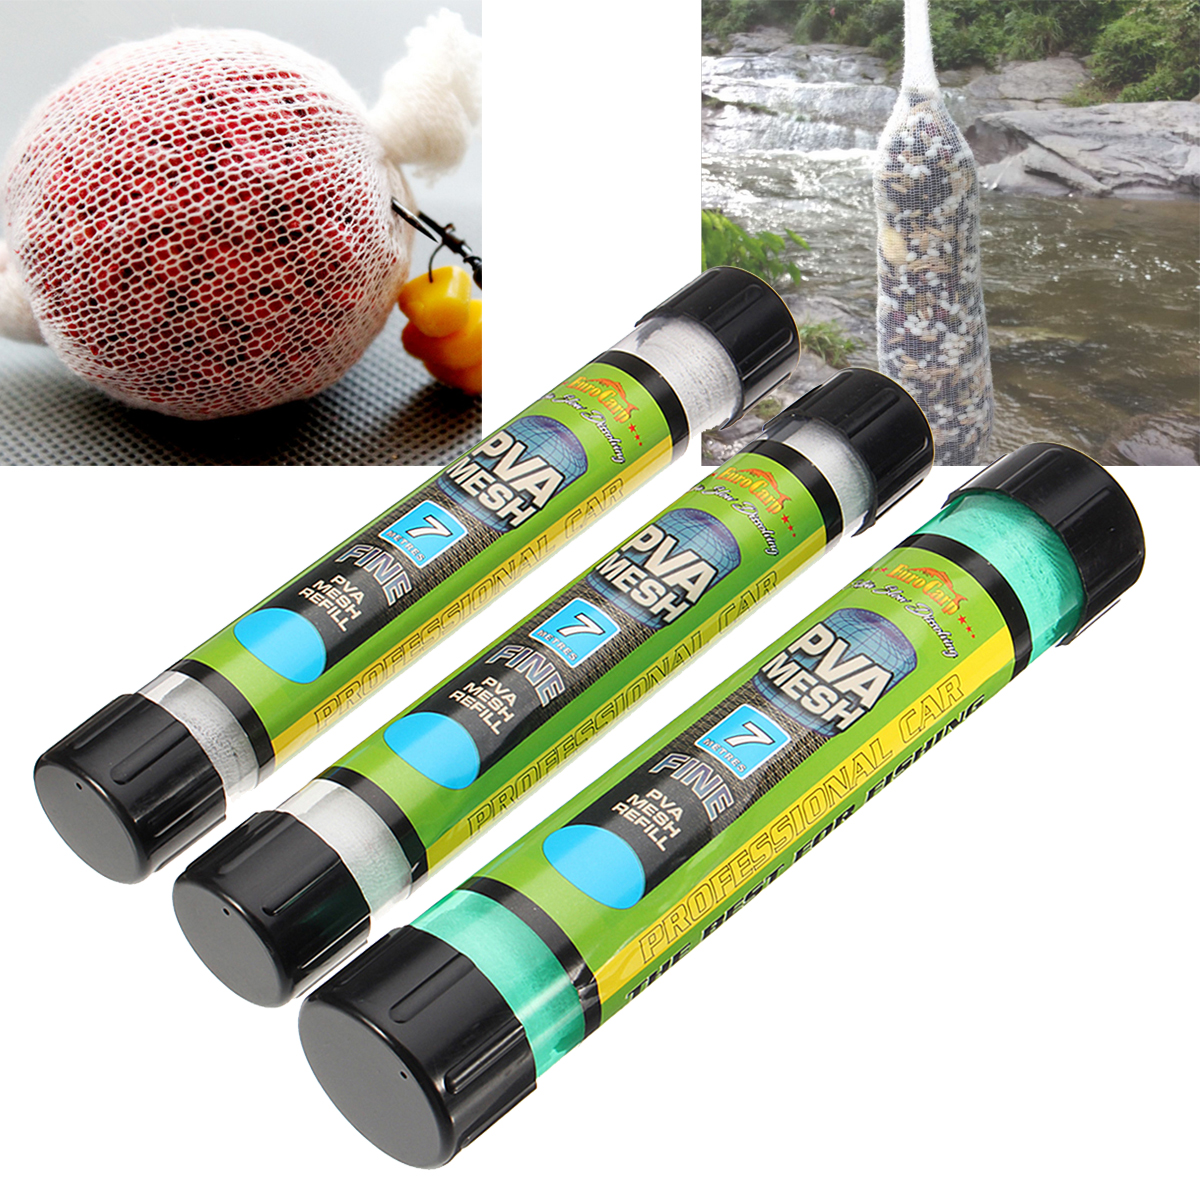 15/25/37mm Width PVA Wide Wire Mesh Coarse Fishing Baits Bag Stocking Plunger Stick Tube 7m Length